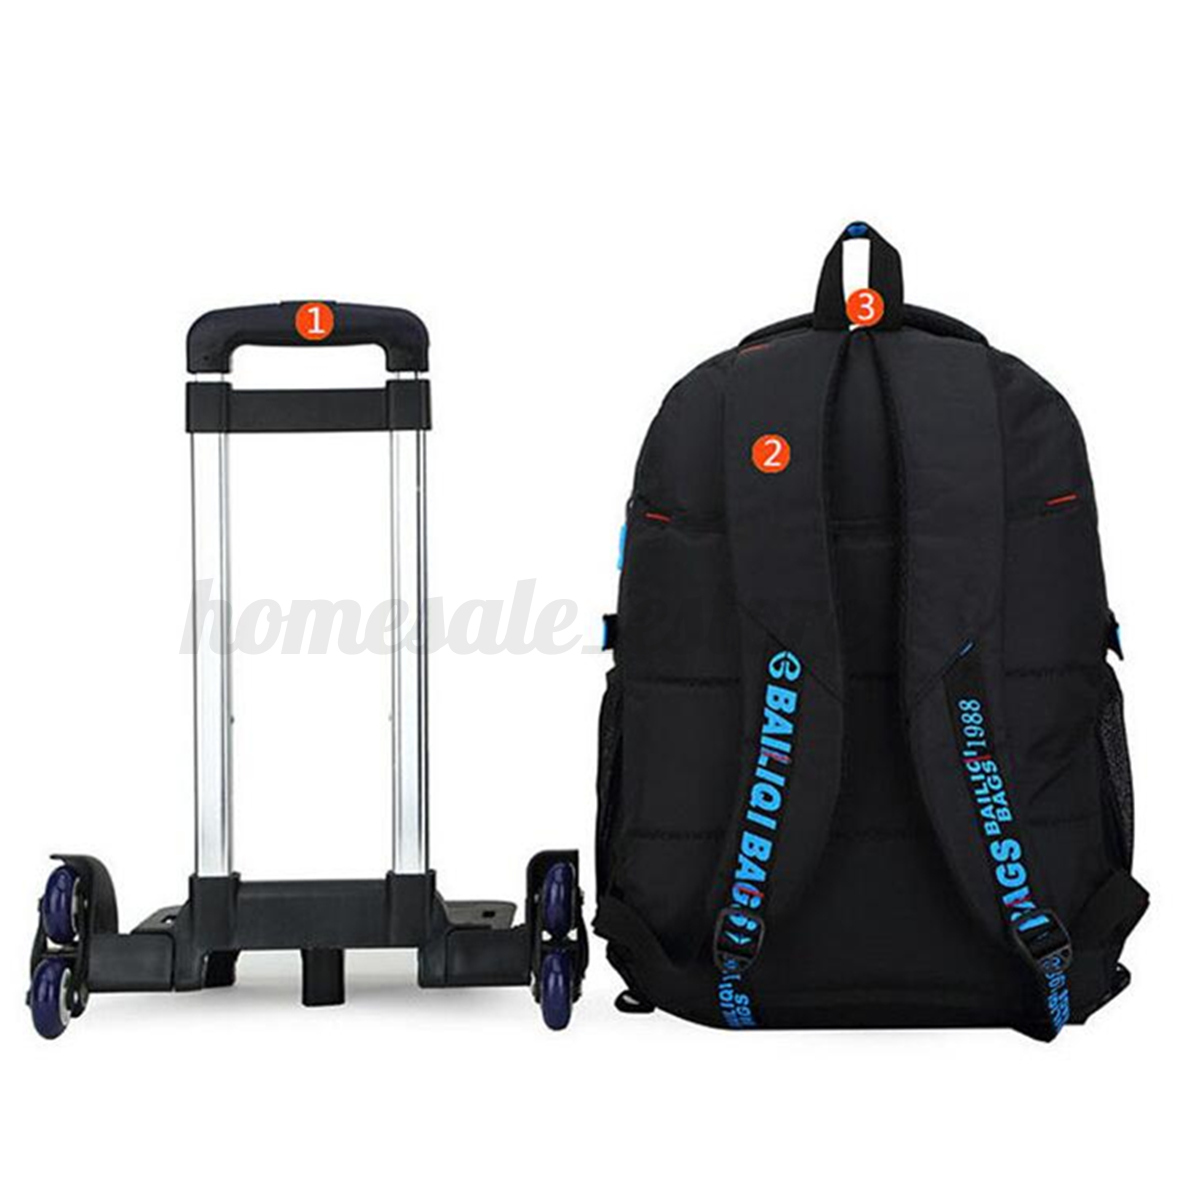 Bags Trolley Luggage By Tatonka Kids Children Trolley School Luggage Hand Bag With 6